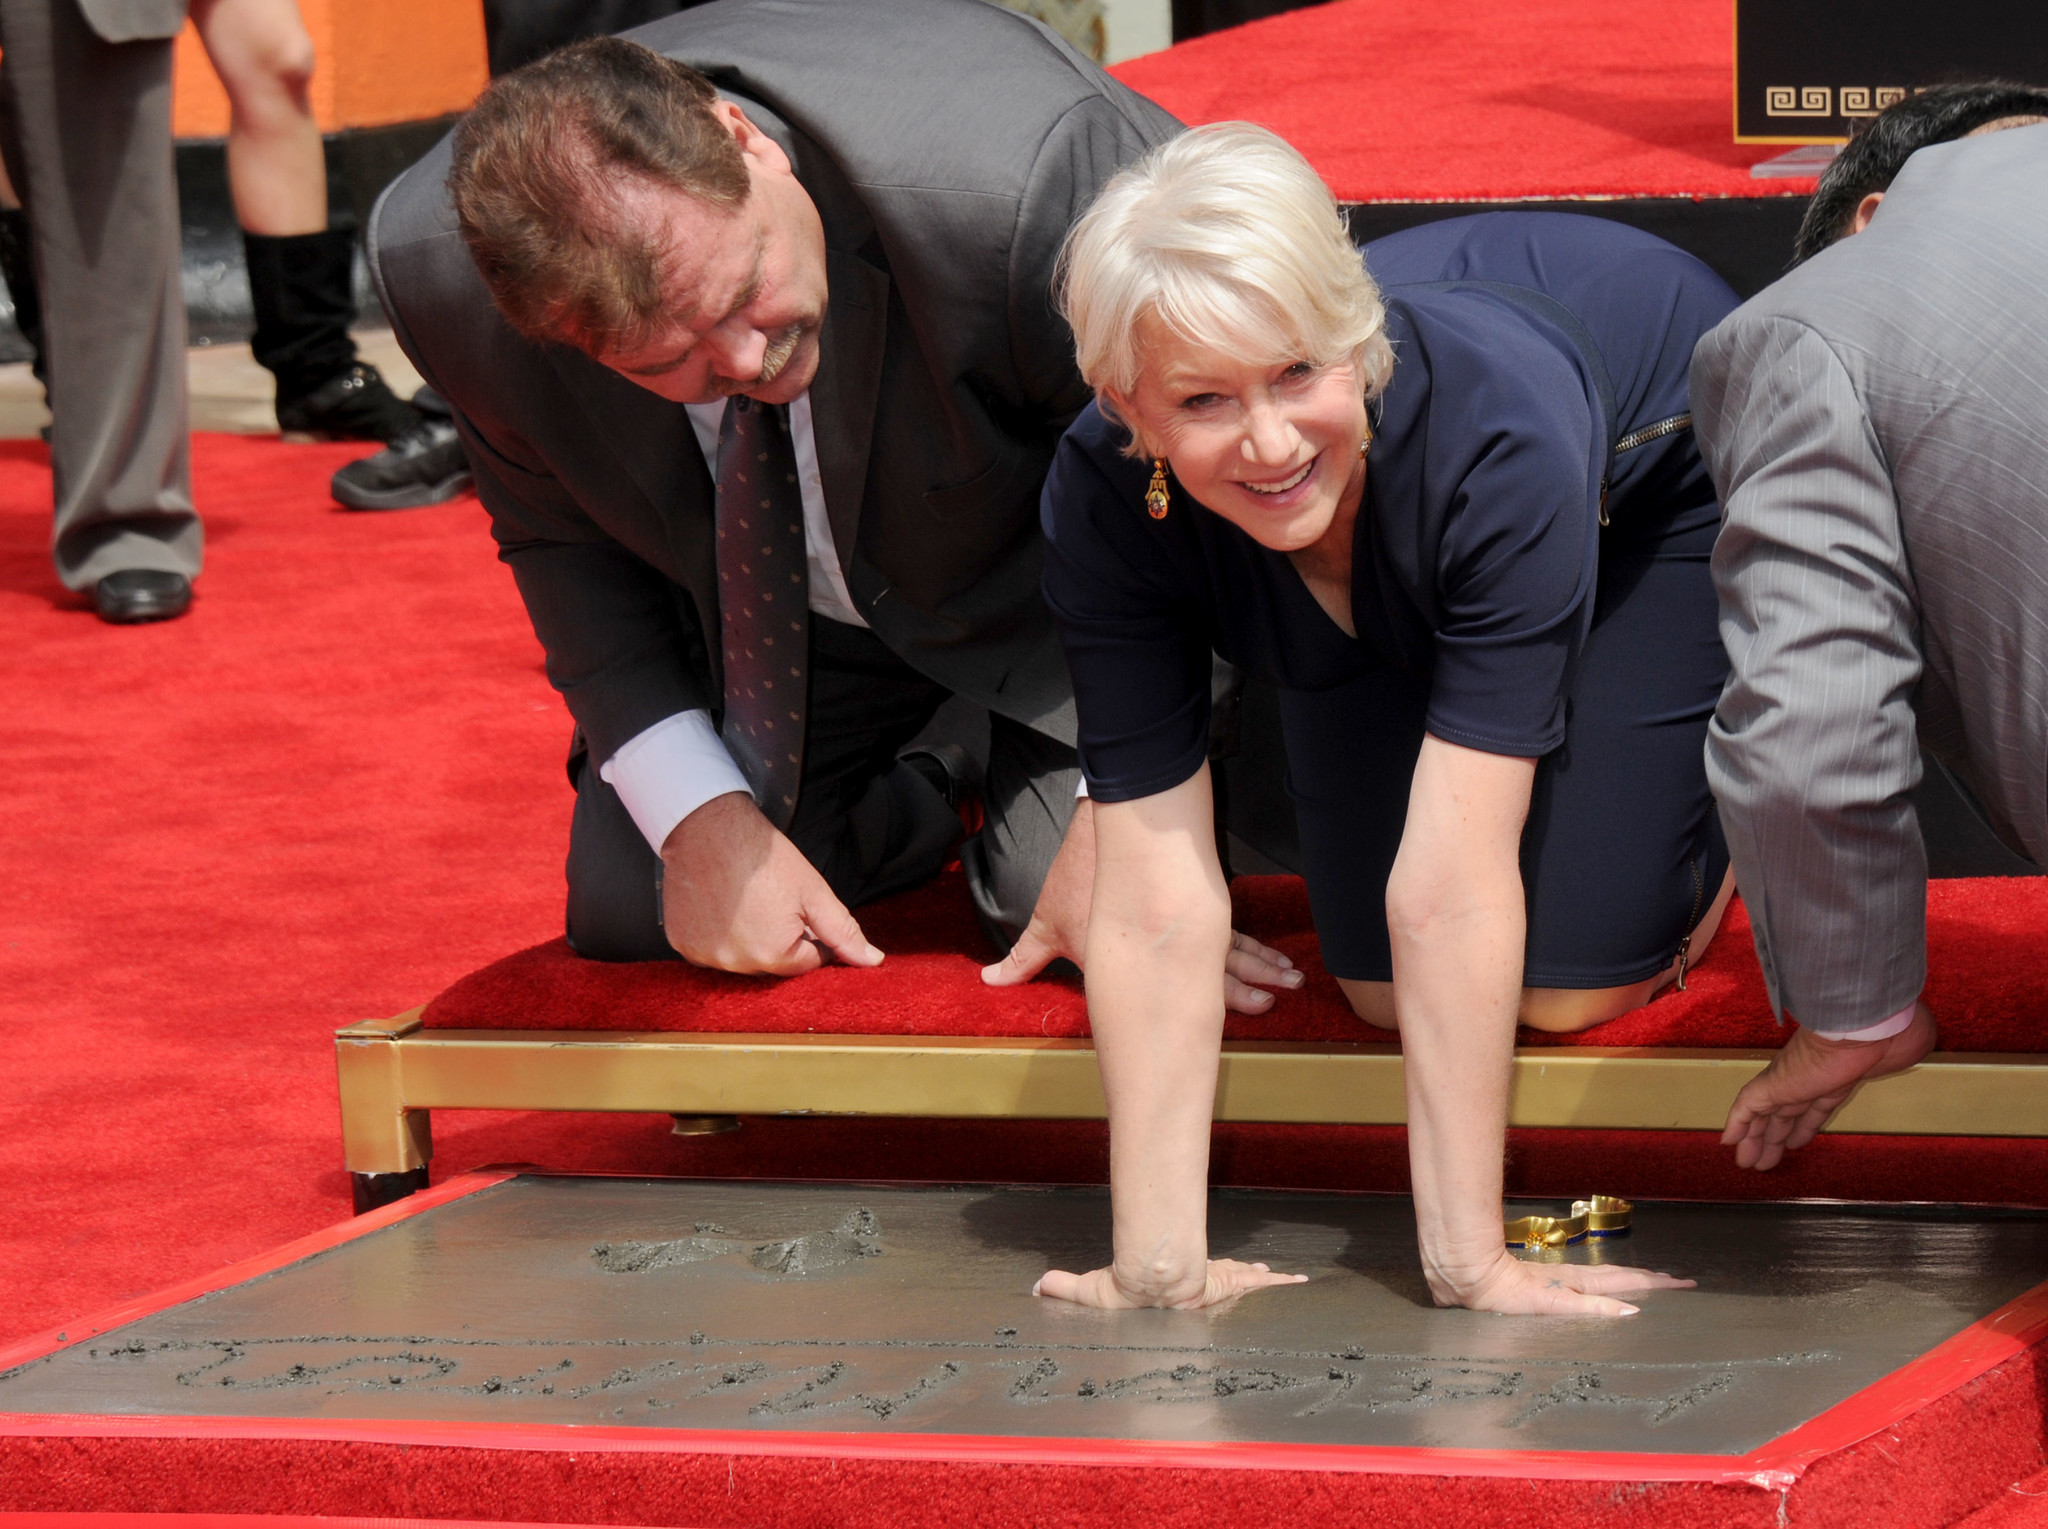 Grauman's Hand & Footprints: Grauman's Chinese Theater ...